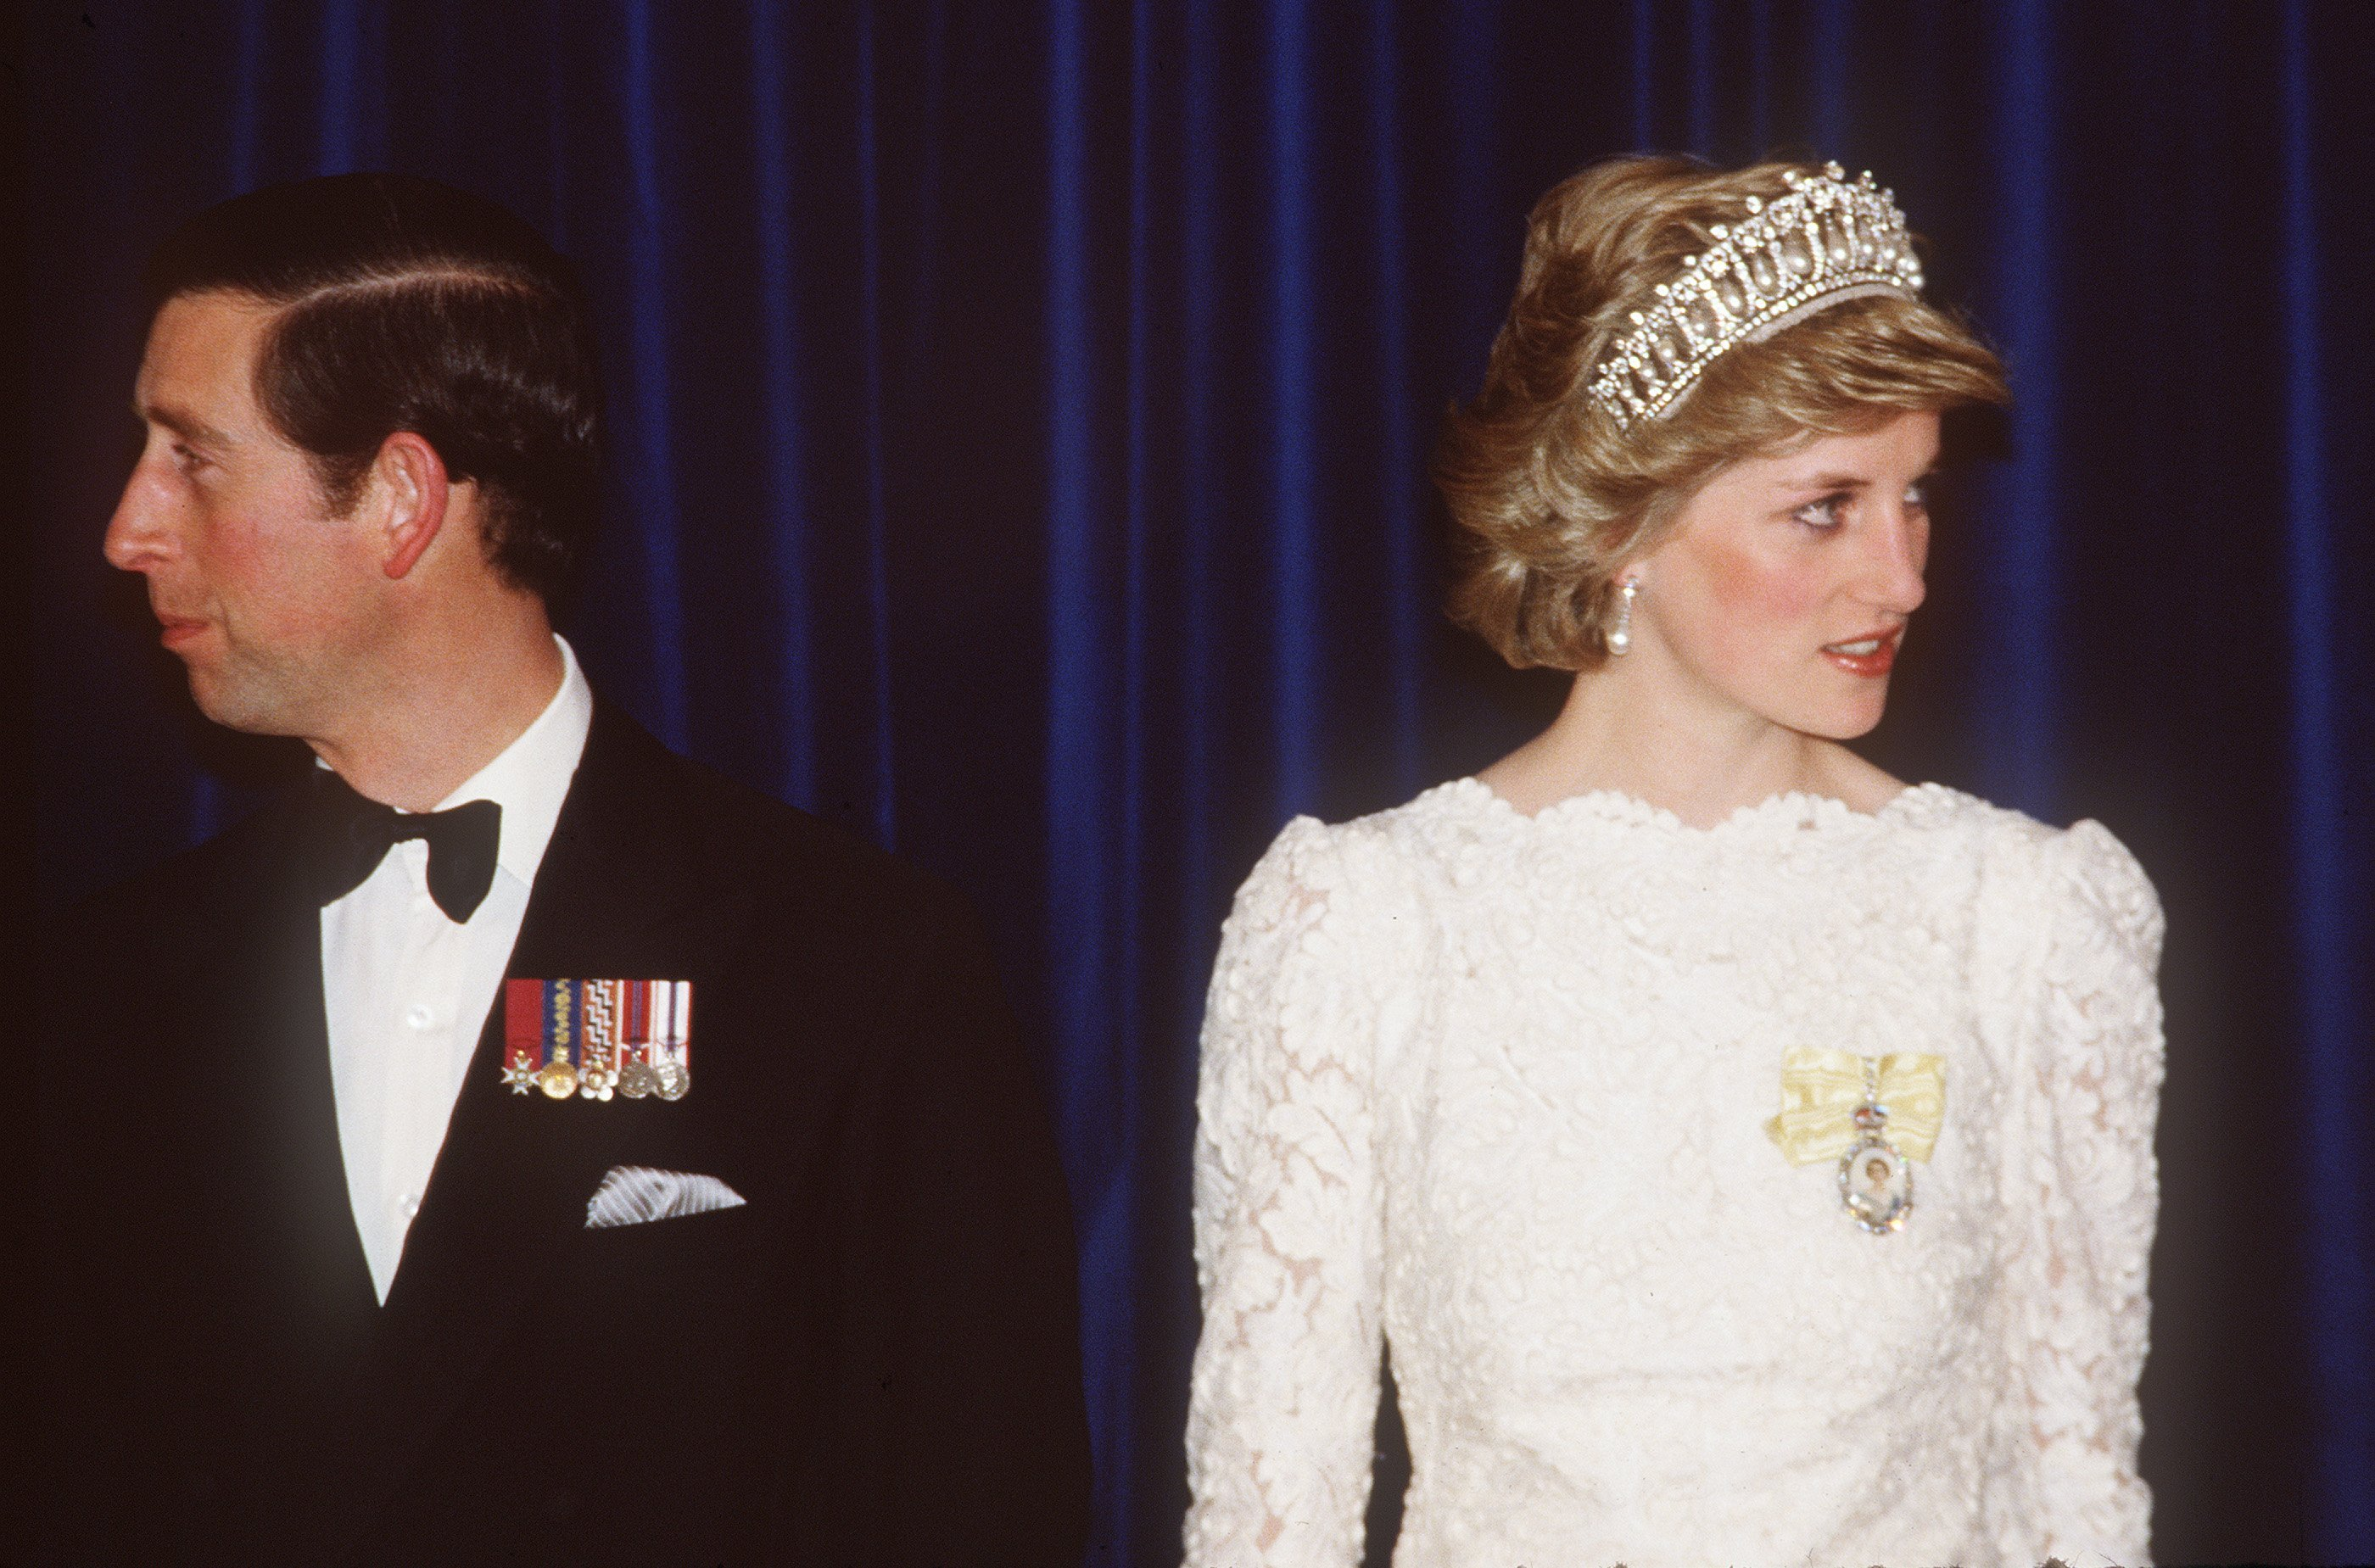 Prince Charles and Princess Diana | Photo: Getty Images